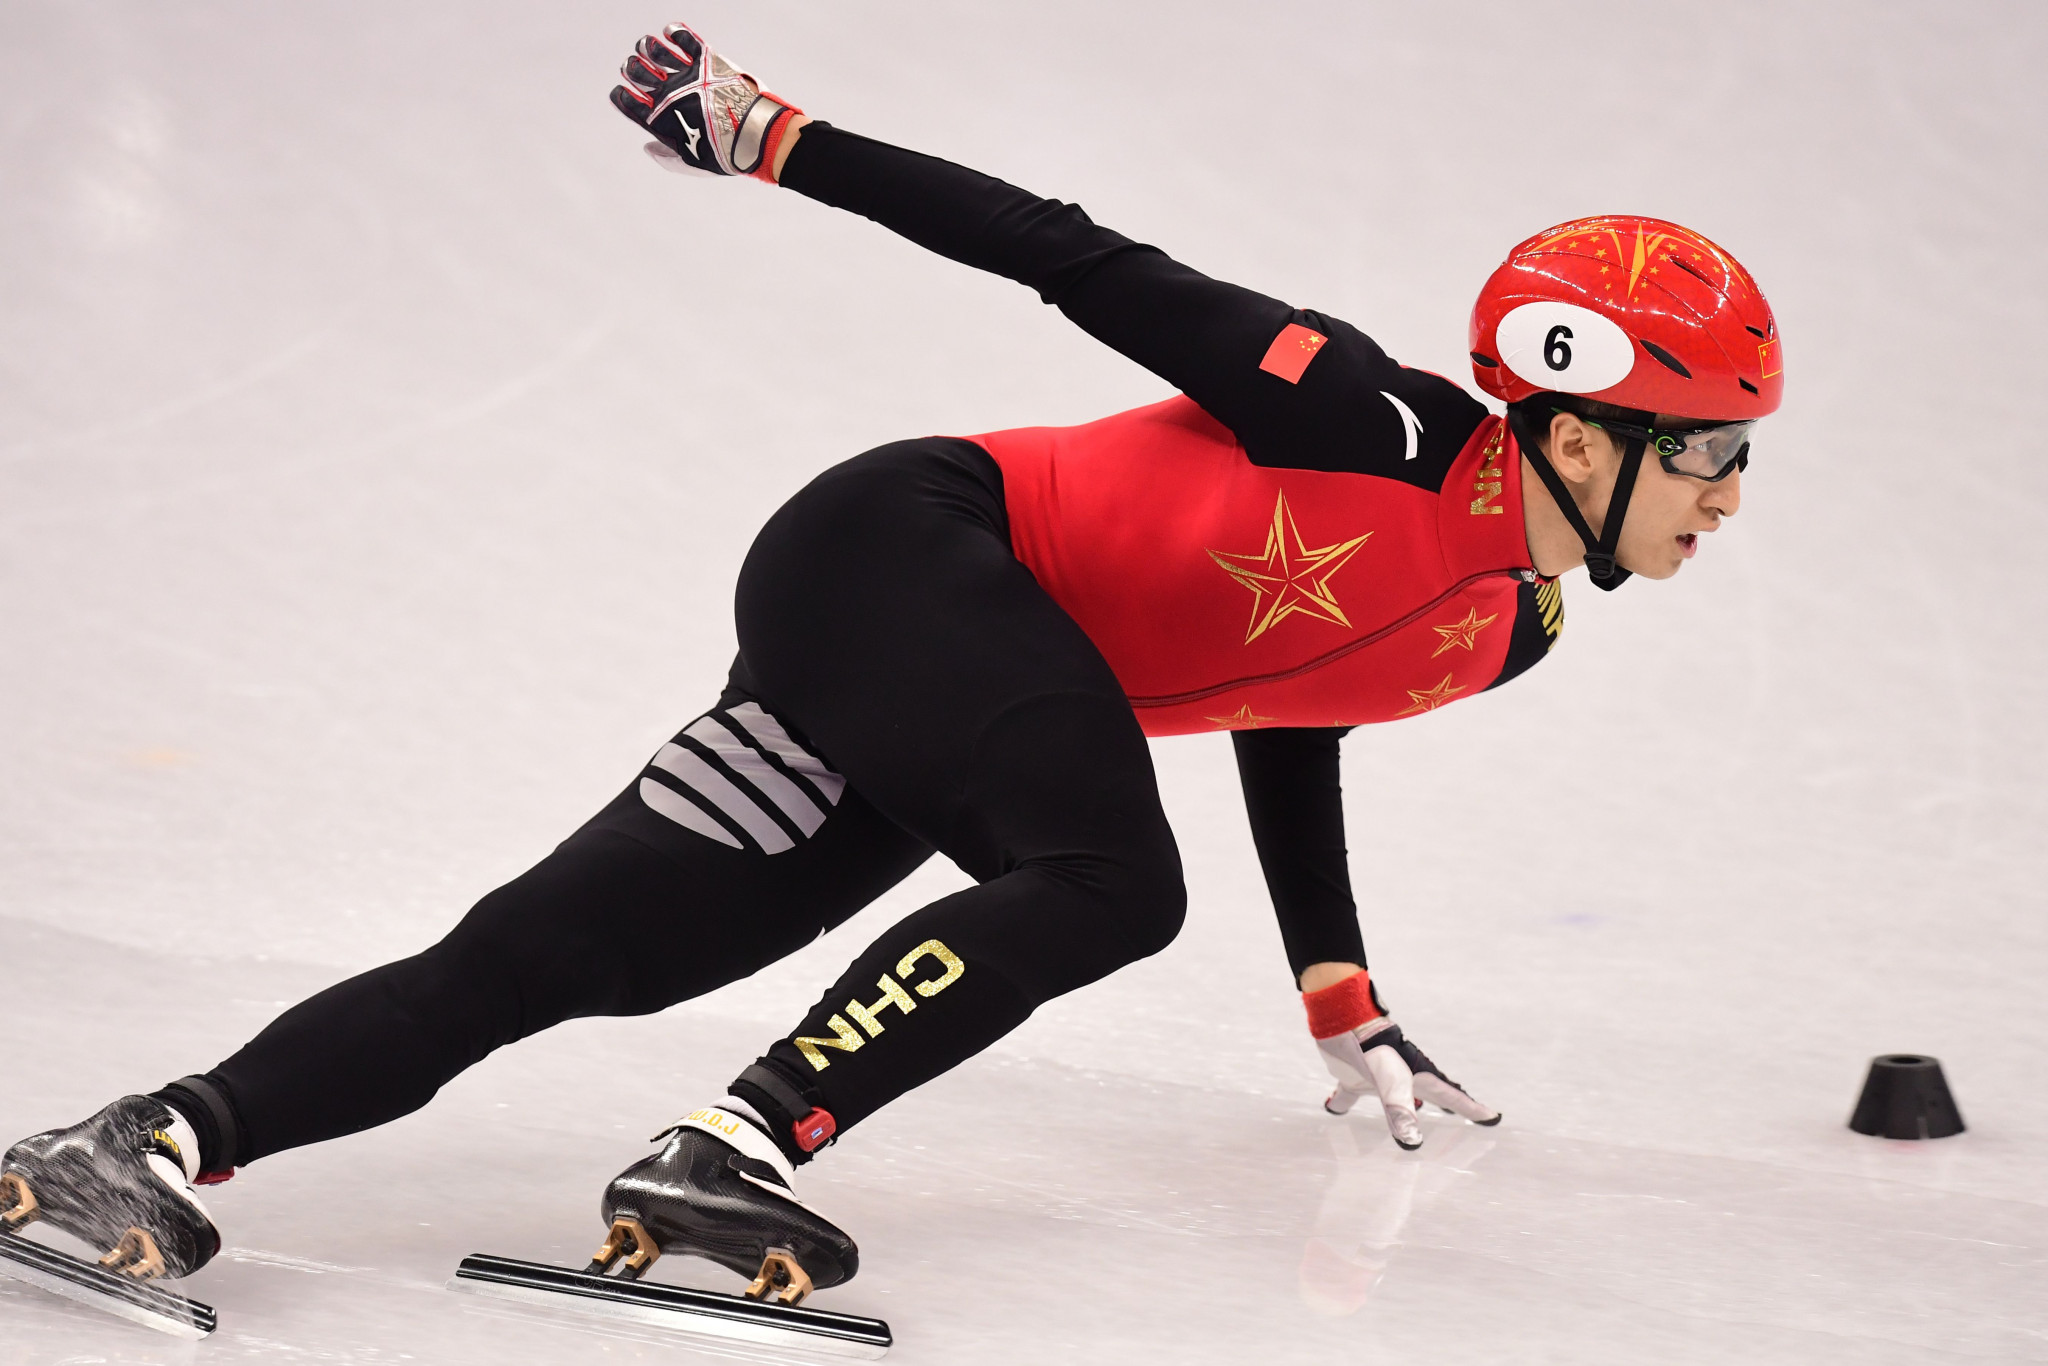 Wu breaks world record to clinch first gold for China at Pyeongchang 2018